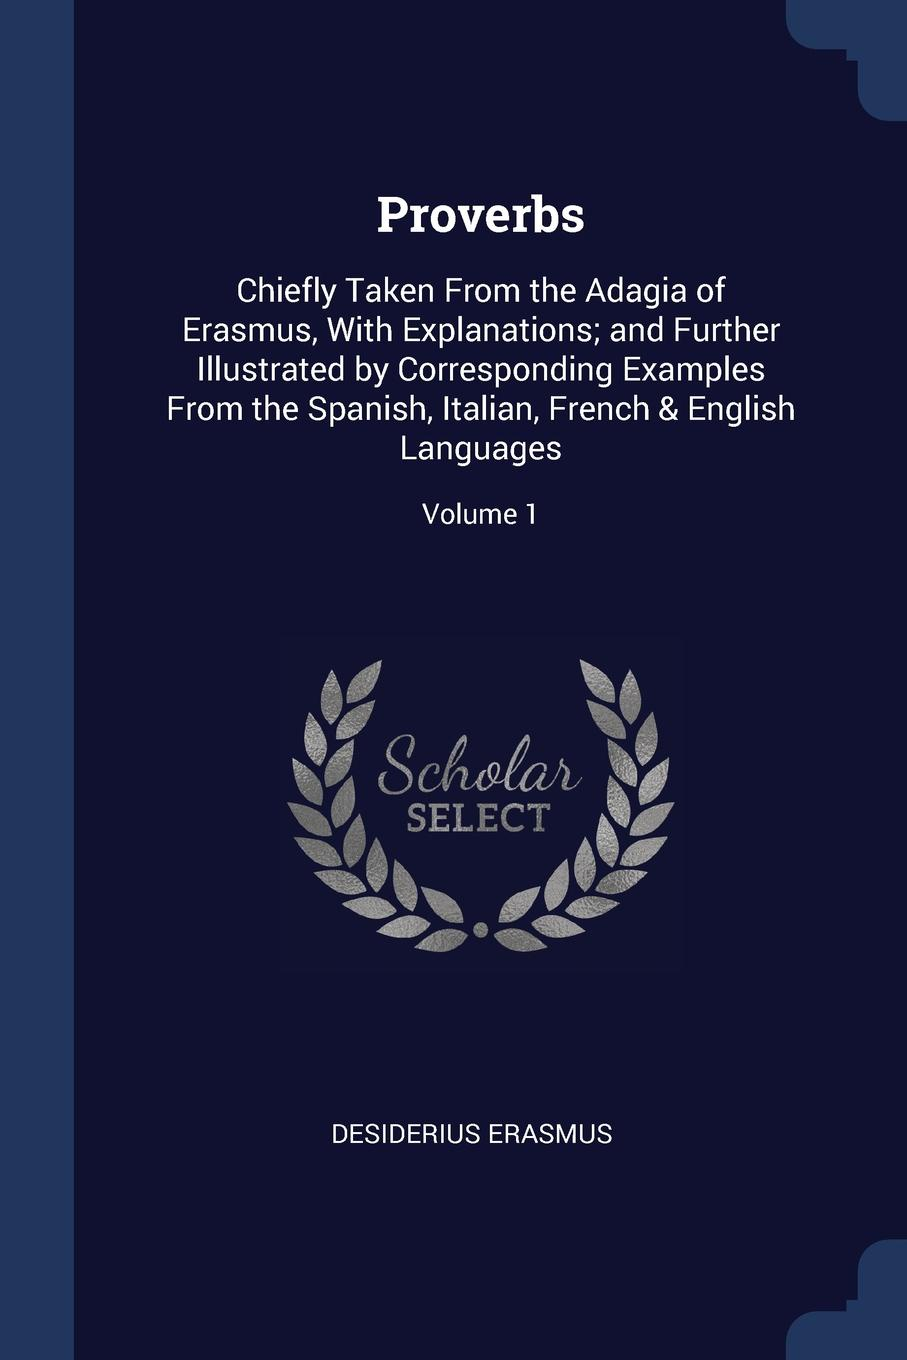 Desiderius Erasmus Proverbs. Chiefly Taken From the Adagia of Erasmus, With Explanations; and Further Illustrated by Corresponding Examples Spanish, Italian, French . English Languages; Volume 1